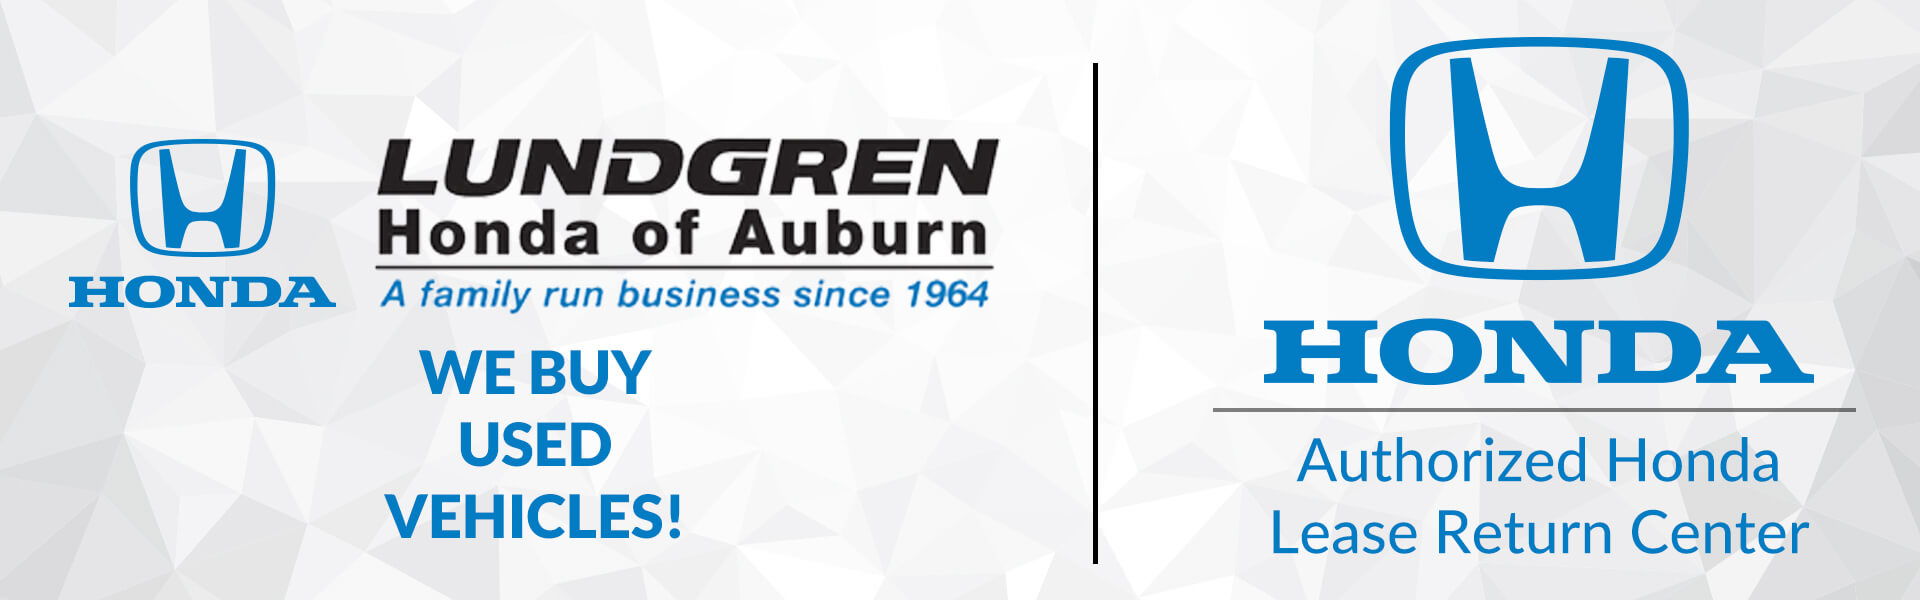 Lundgren of Honda of Auburn is now your Authorized lease return center for all Honda Leases